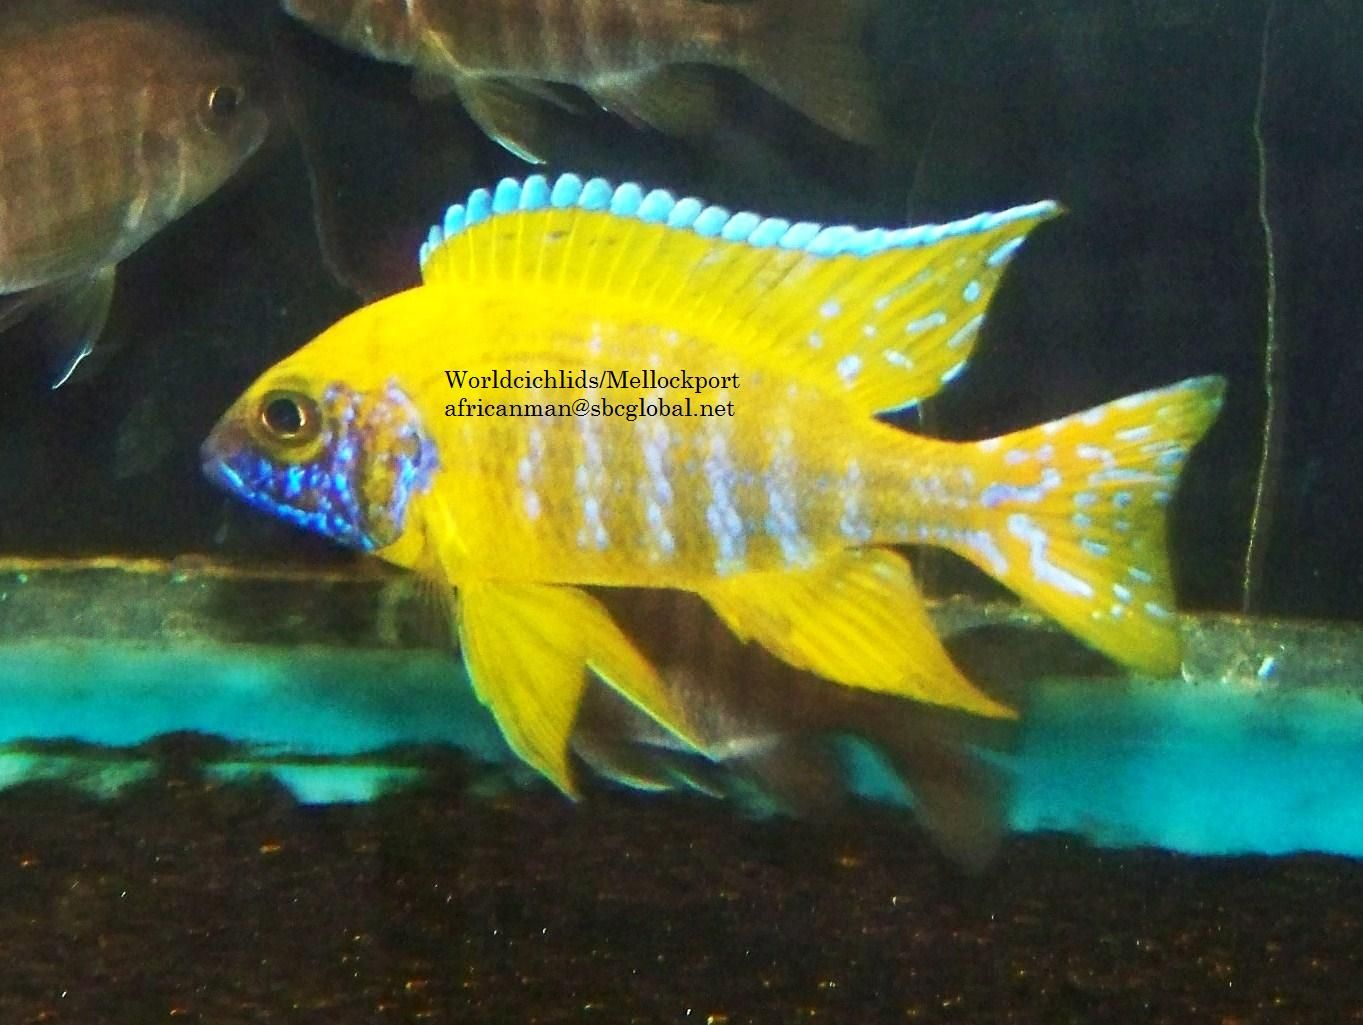 Pin By Michelle Demaagd On Snorkeling Cichlid Fish Cichlids African Cichlids